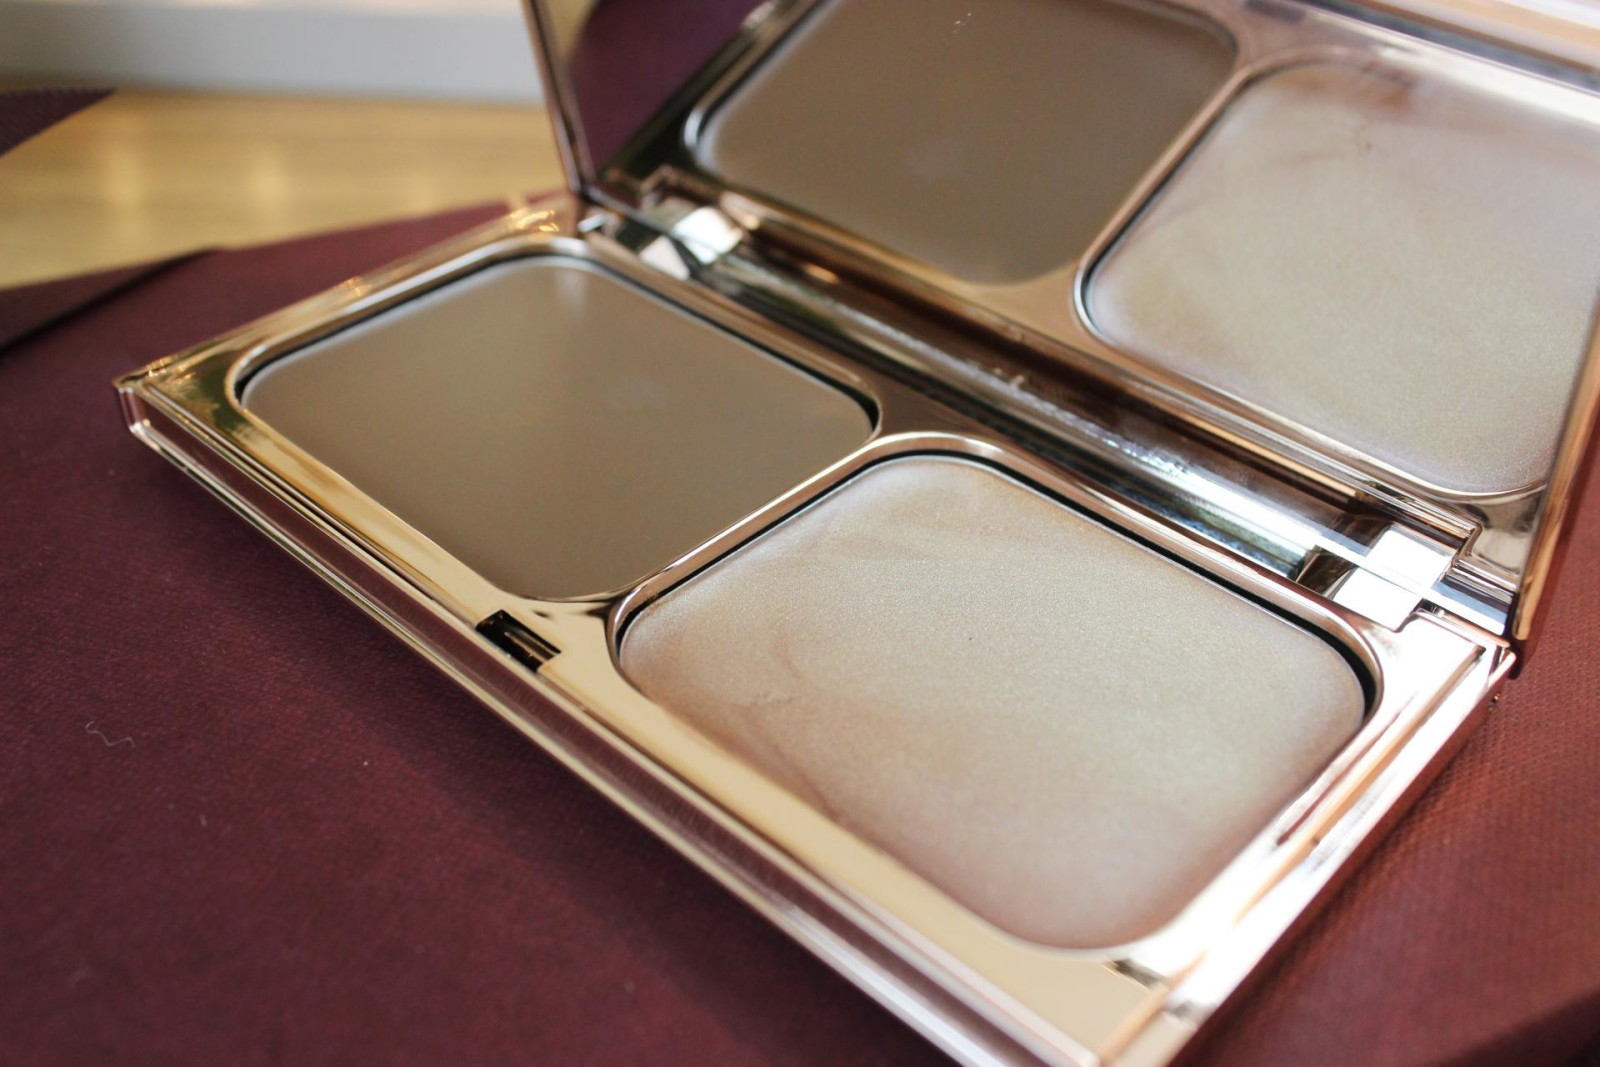 Charlotte Tilbury x Norman Parkinson Filmstar Bronze and Glow